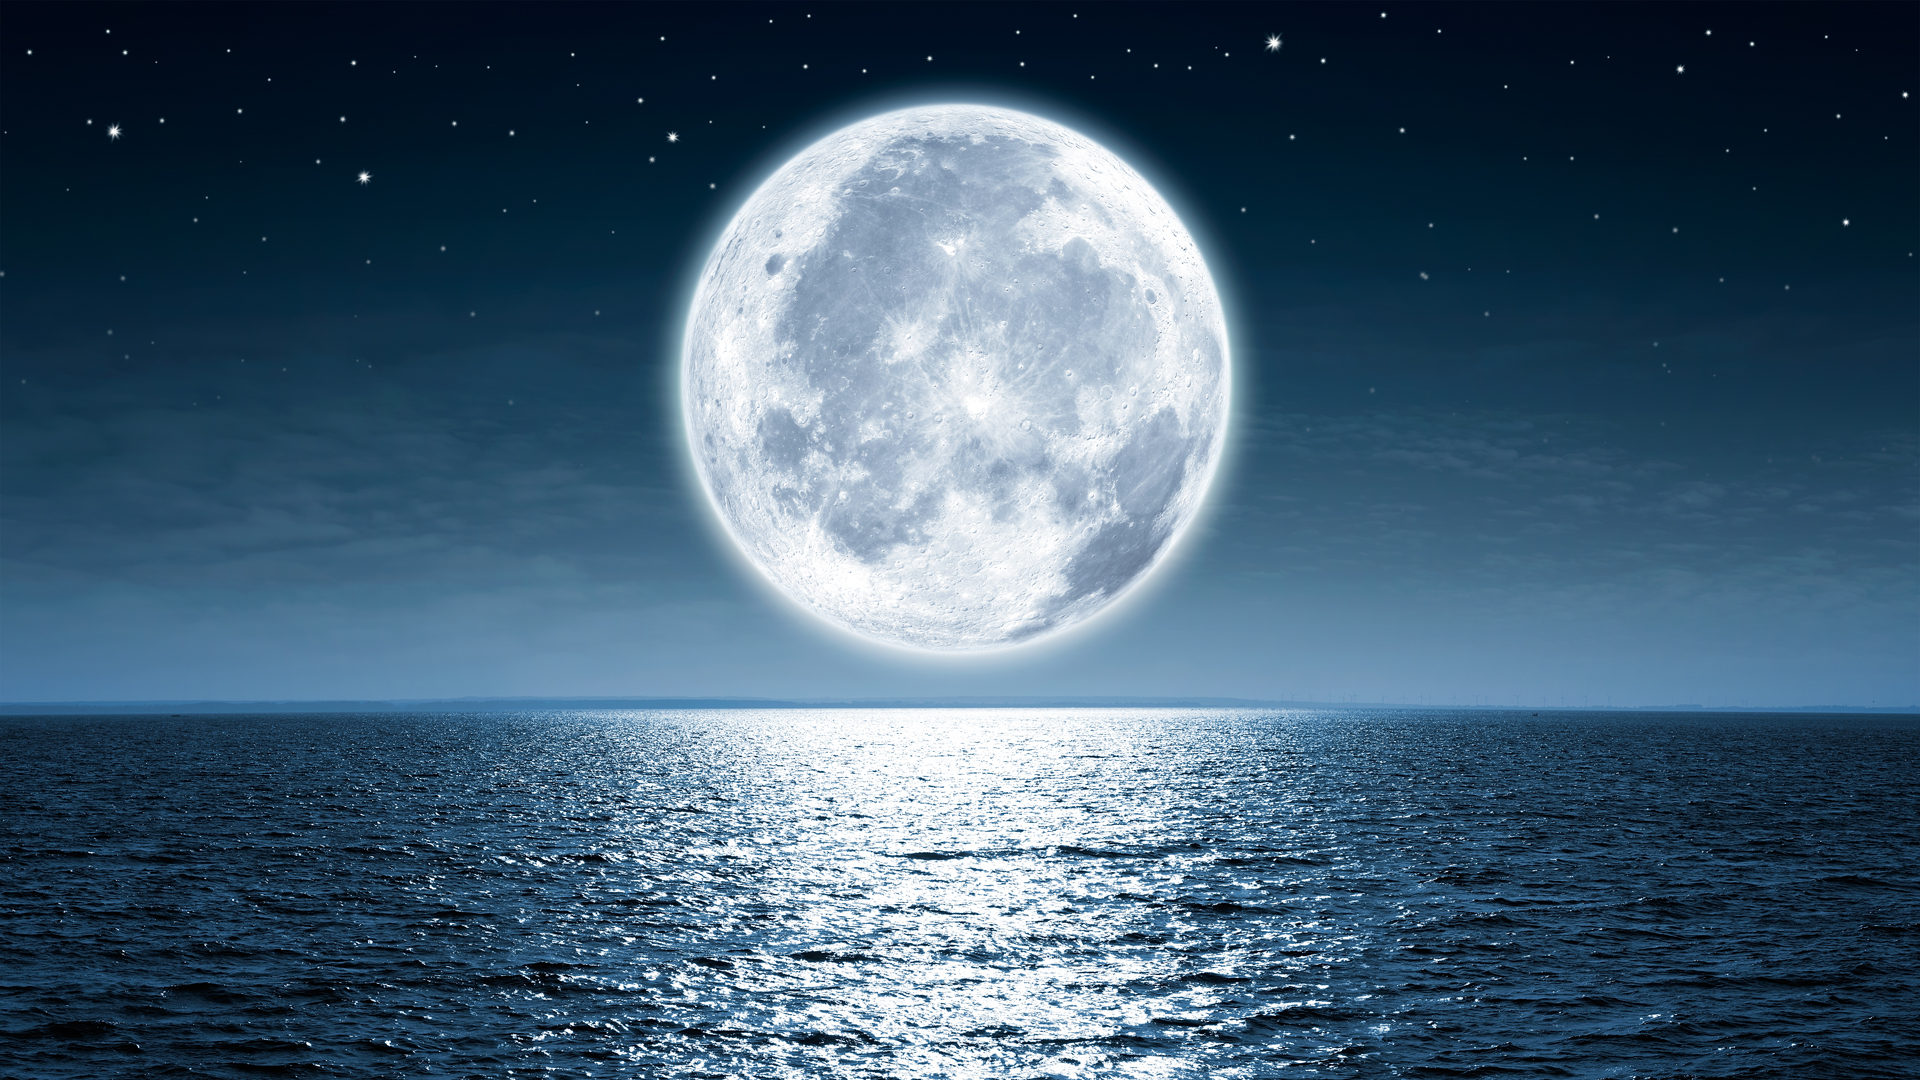 Full moon rising over empty ocean at night. (Credit: iStock / Getty Images Plus)